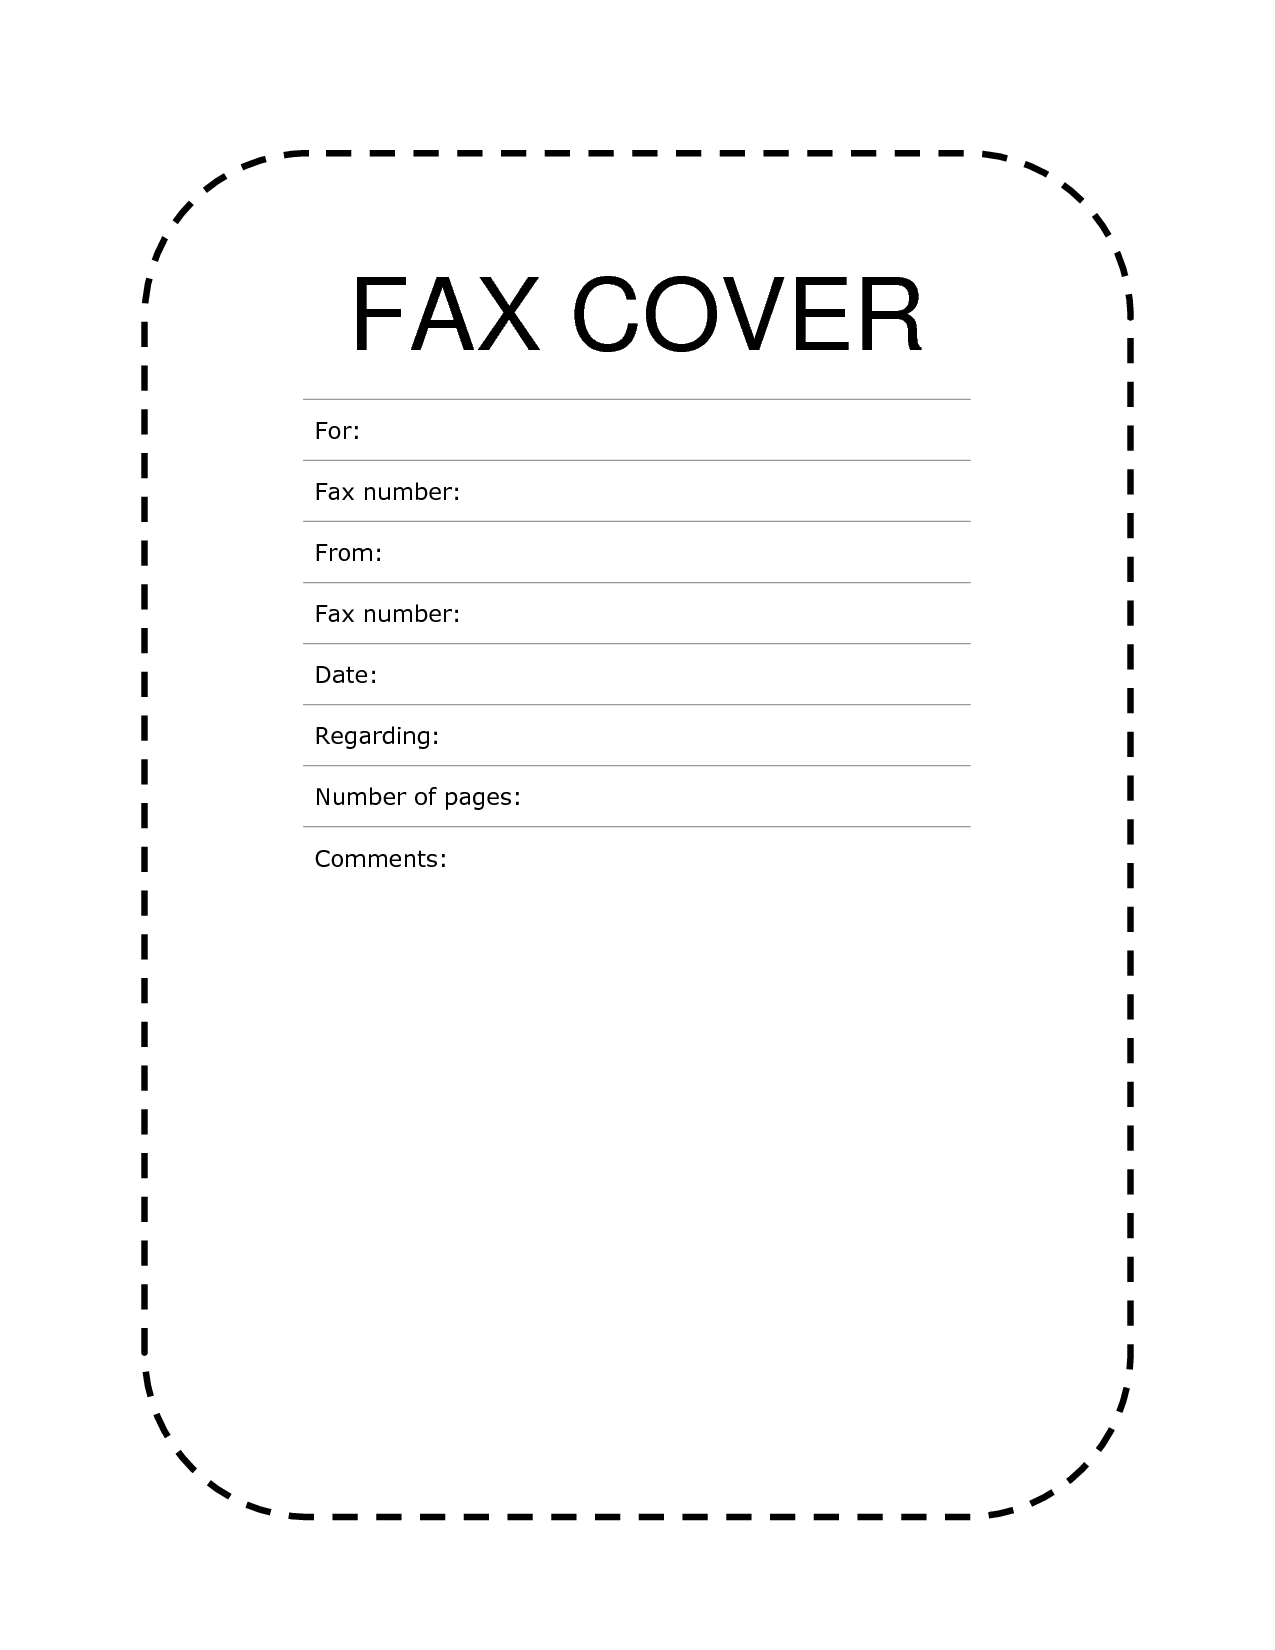 Blank fax cover sheet free printable template blank fax cover sheet free altavistaventures Gallery